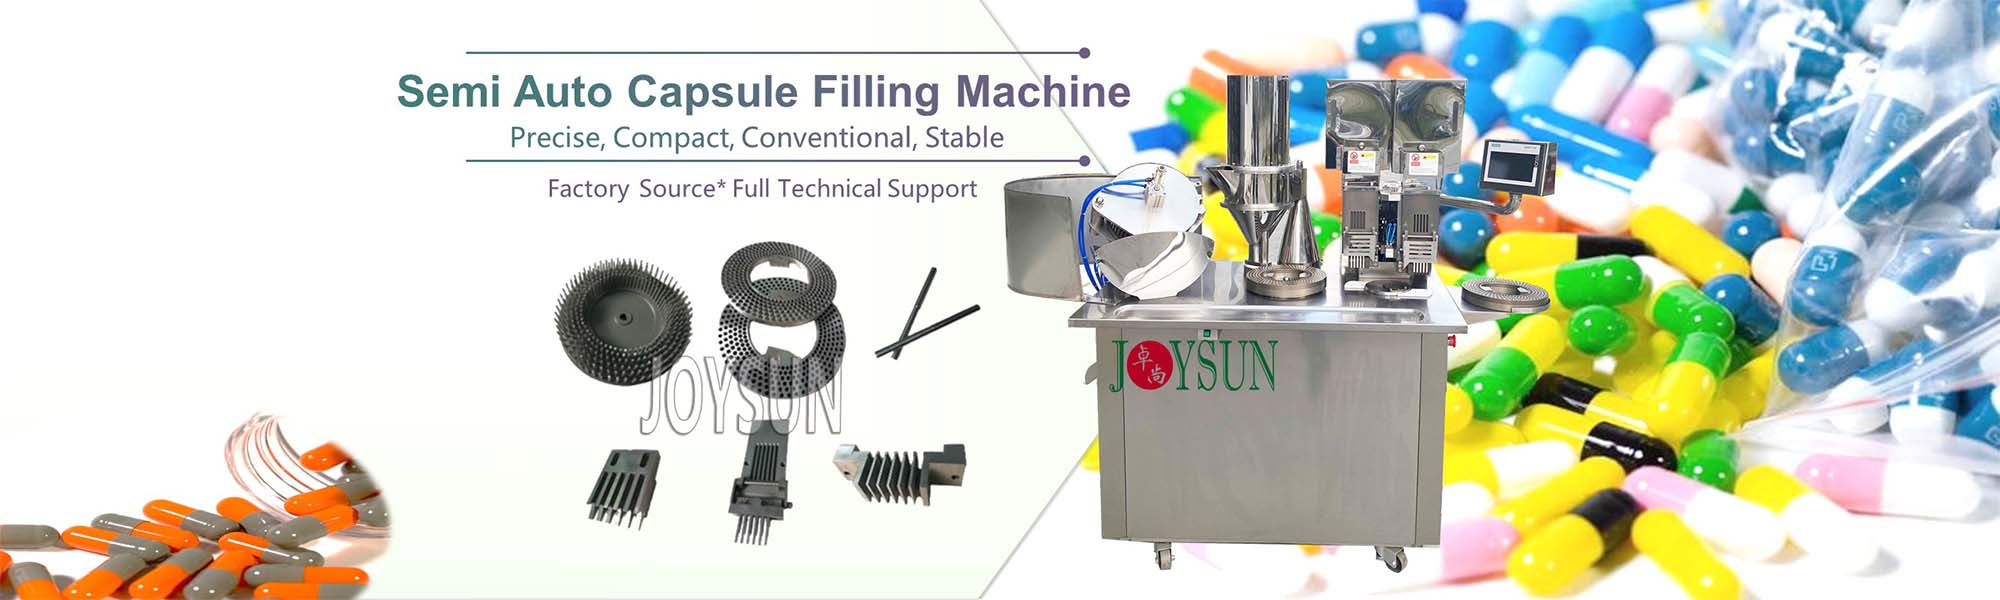 semi-automatic-capsule-filling-machine2